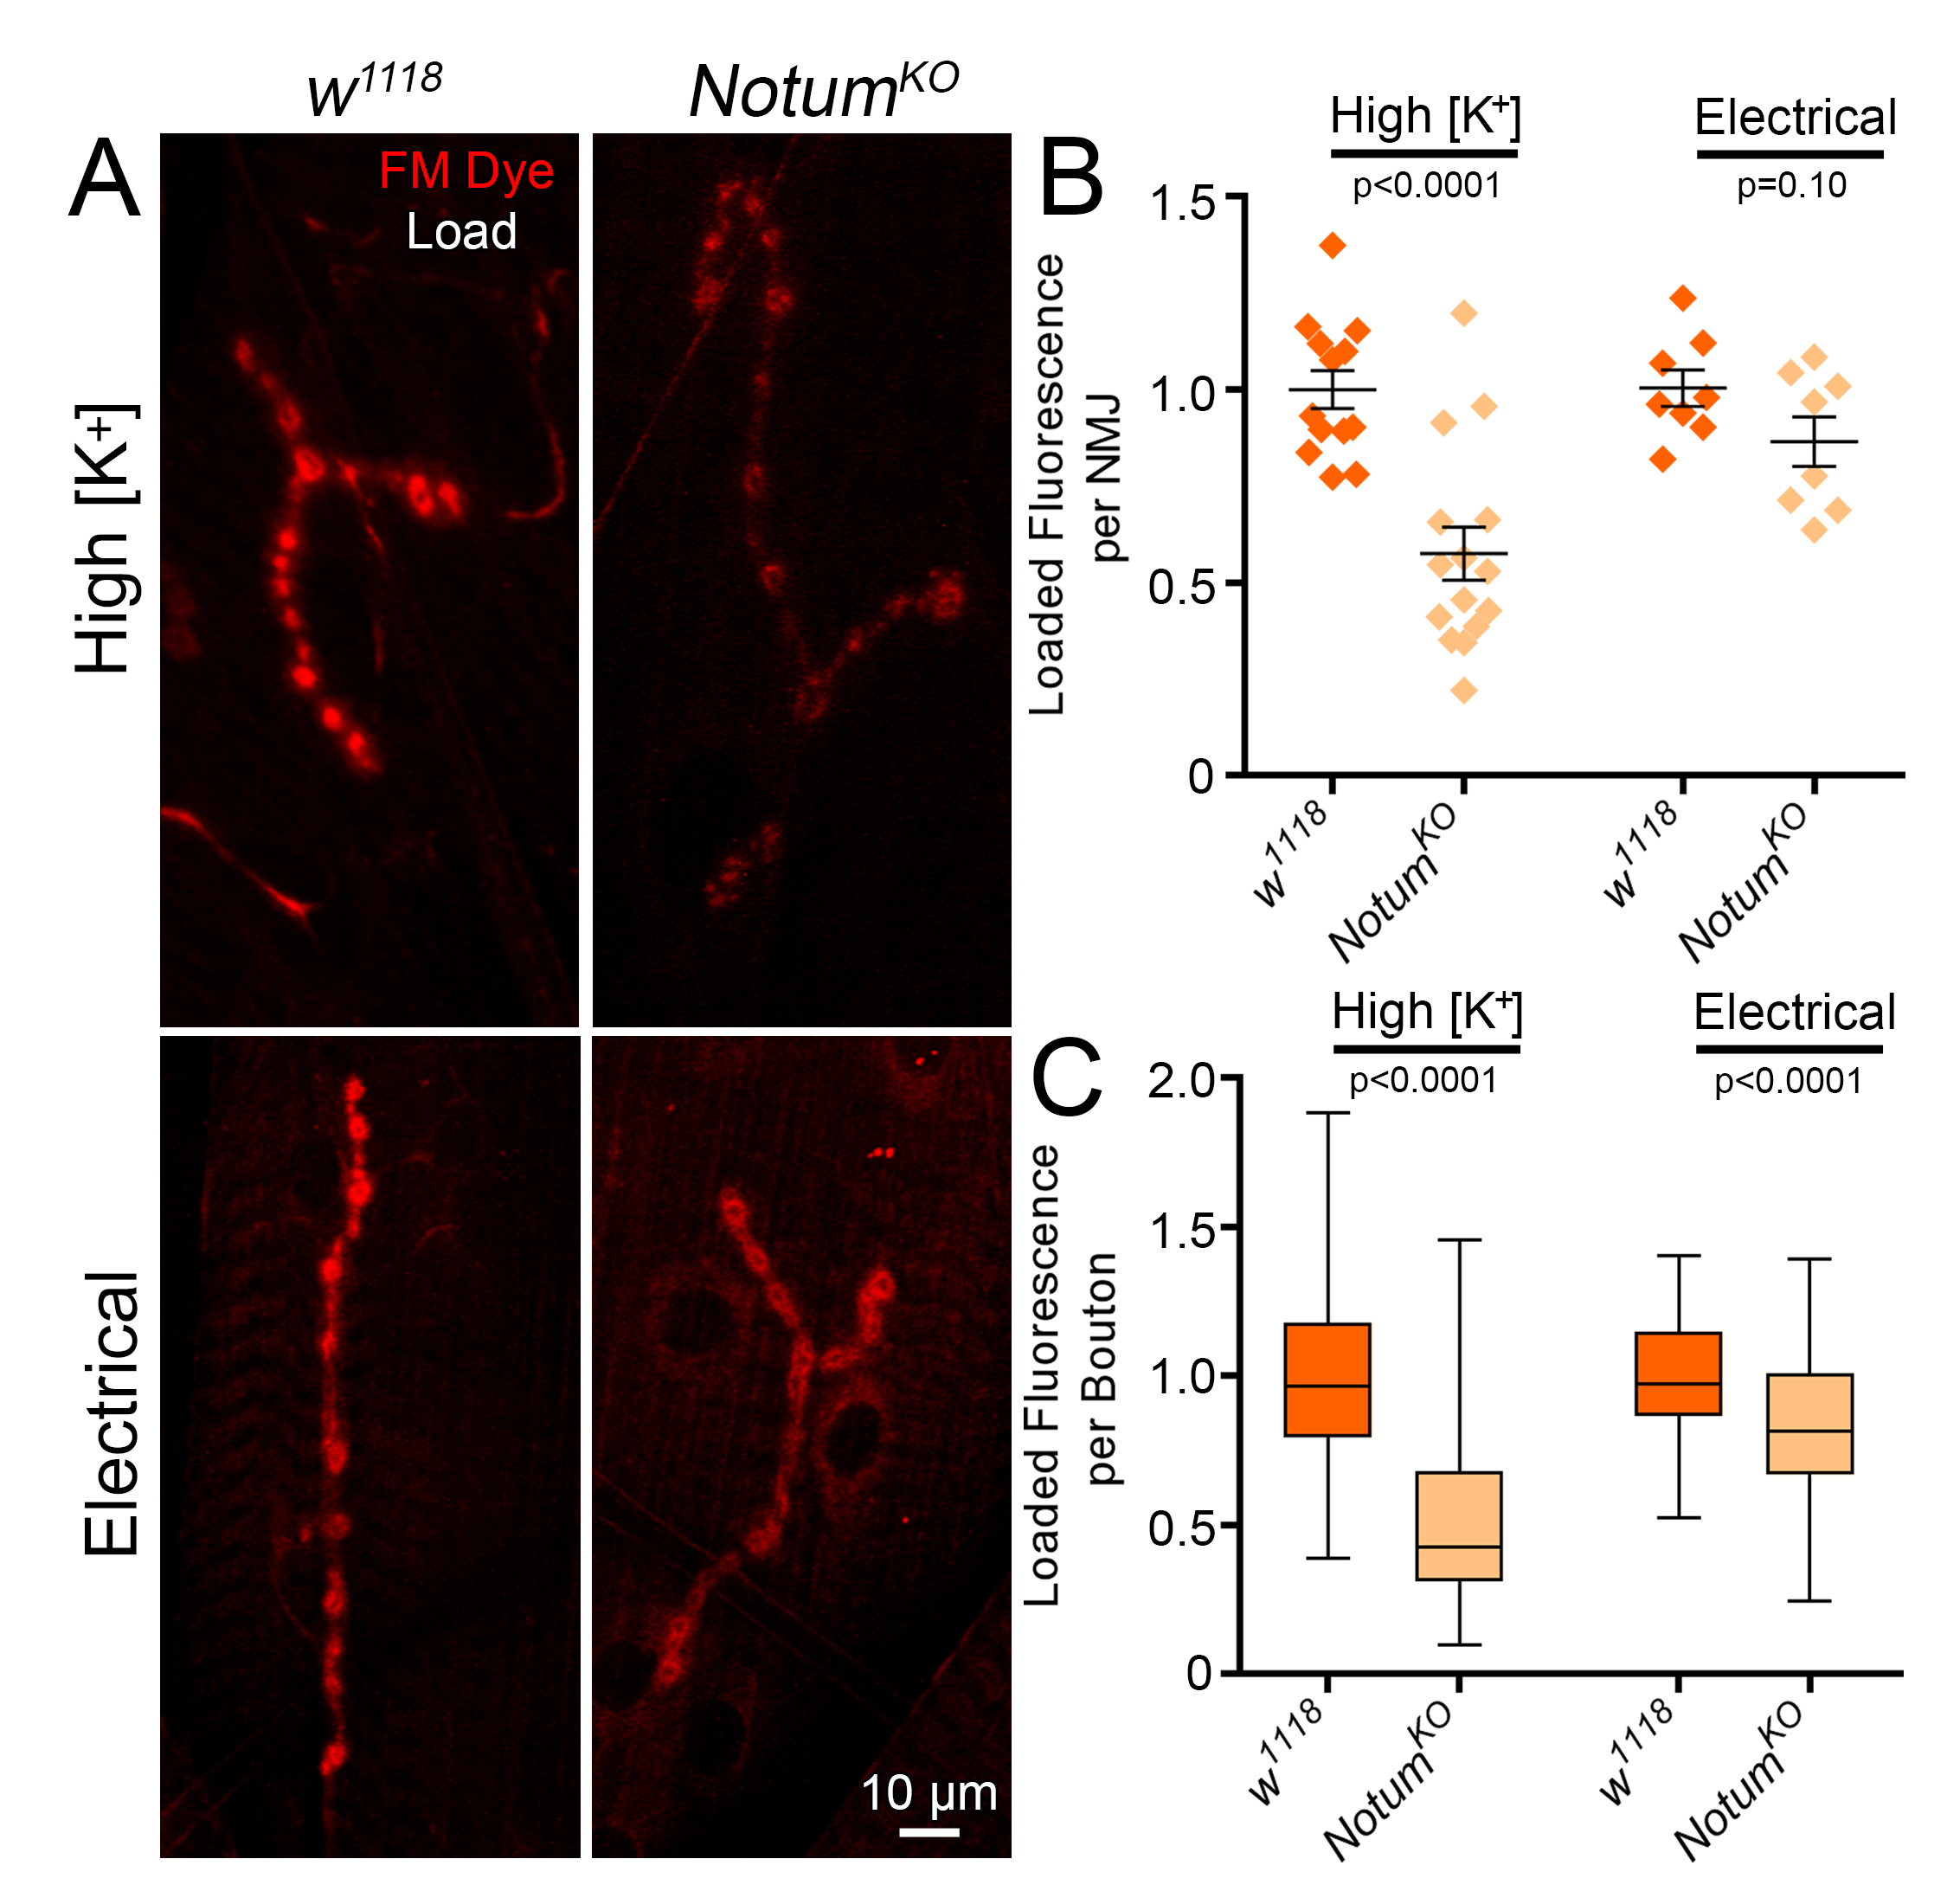 FM Dye Cycling at the Synapse: Comparing High Potassium